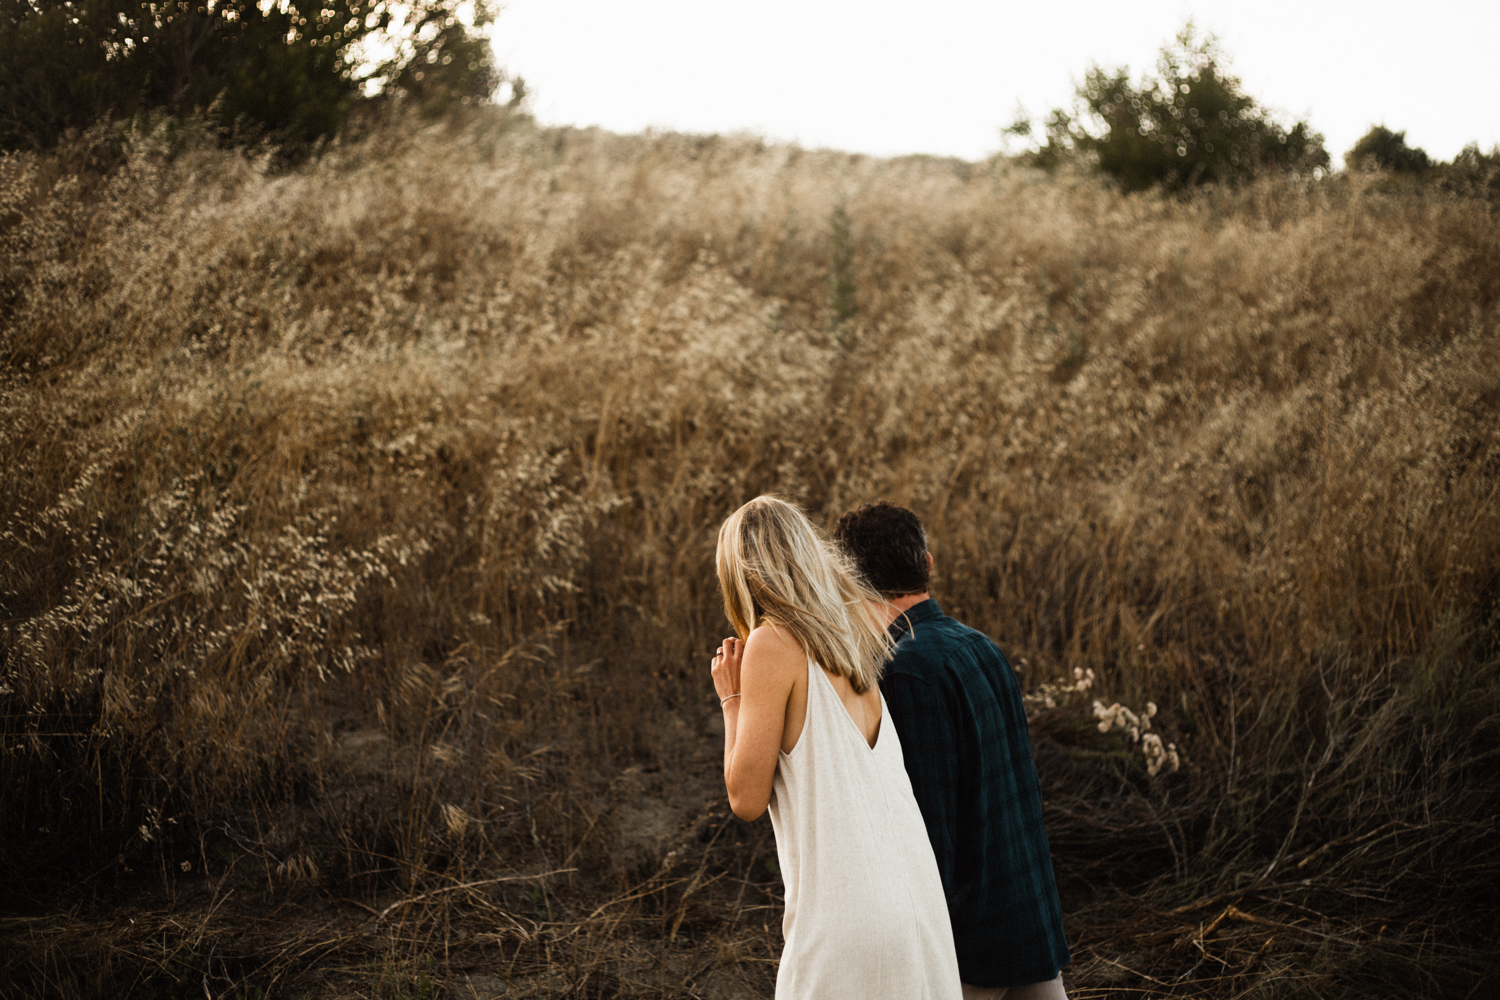 Engagement session shoot photos photography Orange County photographer nature film Talega Home session California15.jpg